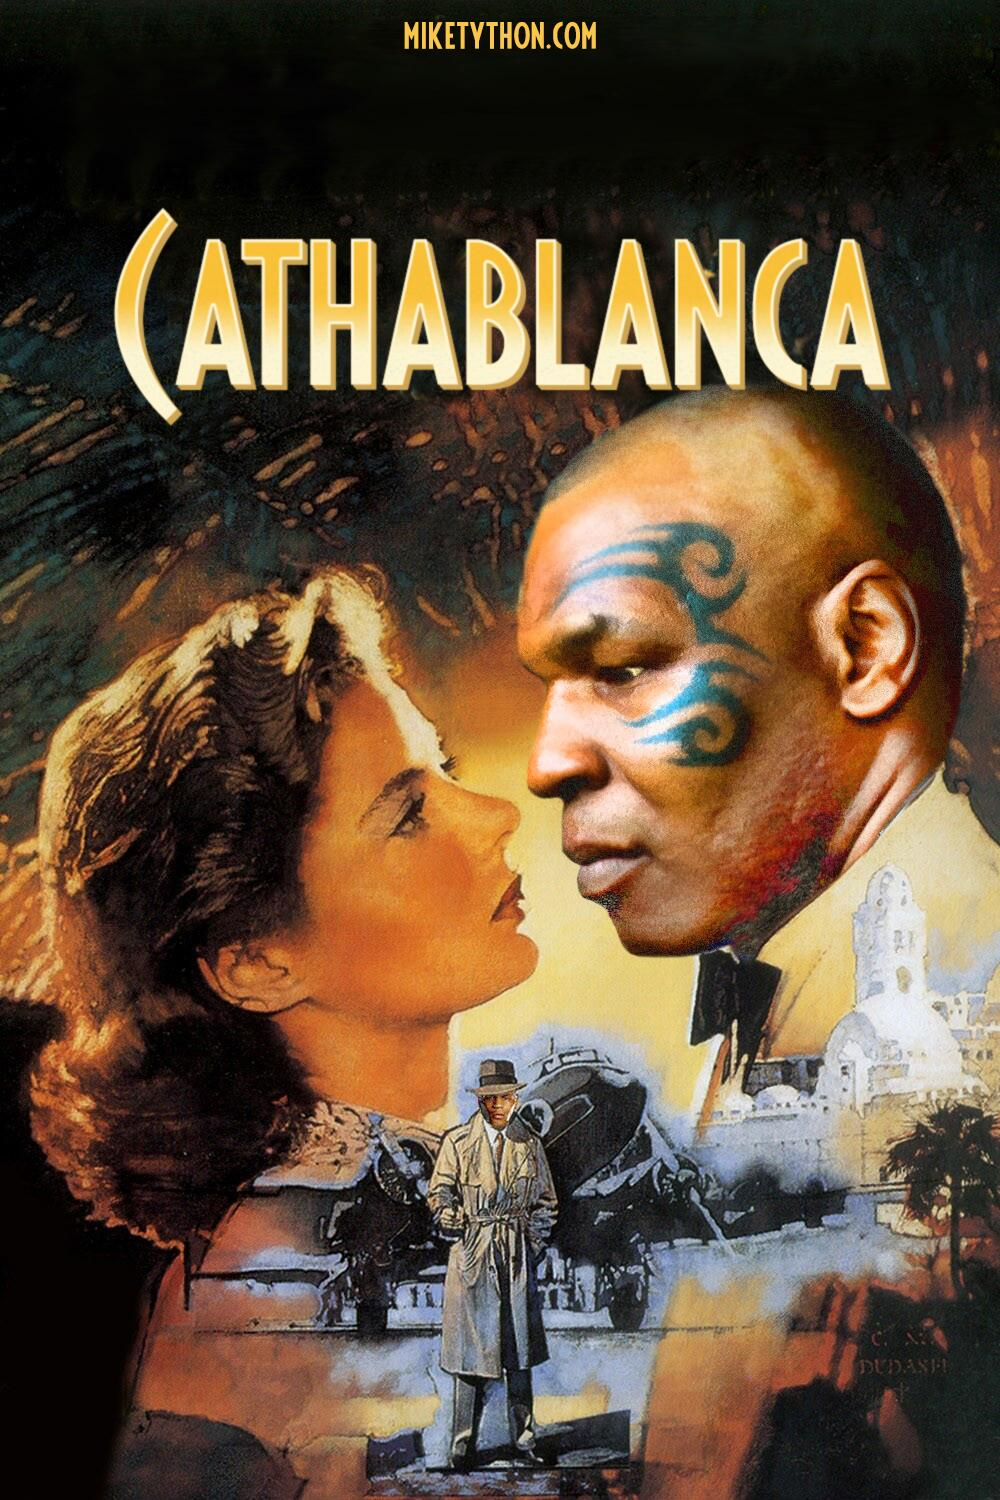 mike tython on twitter miketyson cathablanca casablanca classic